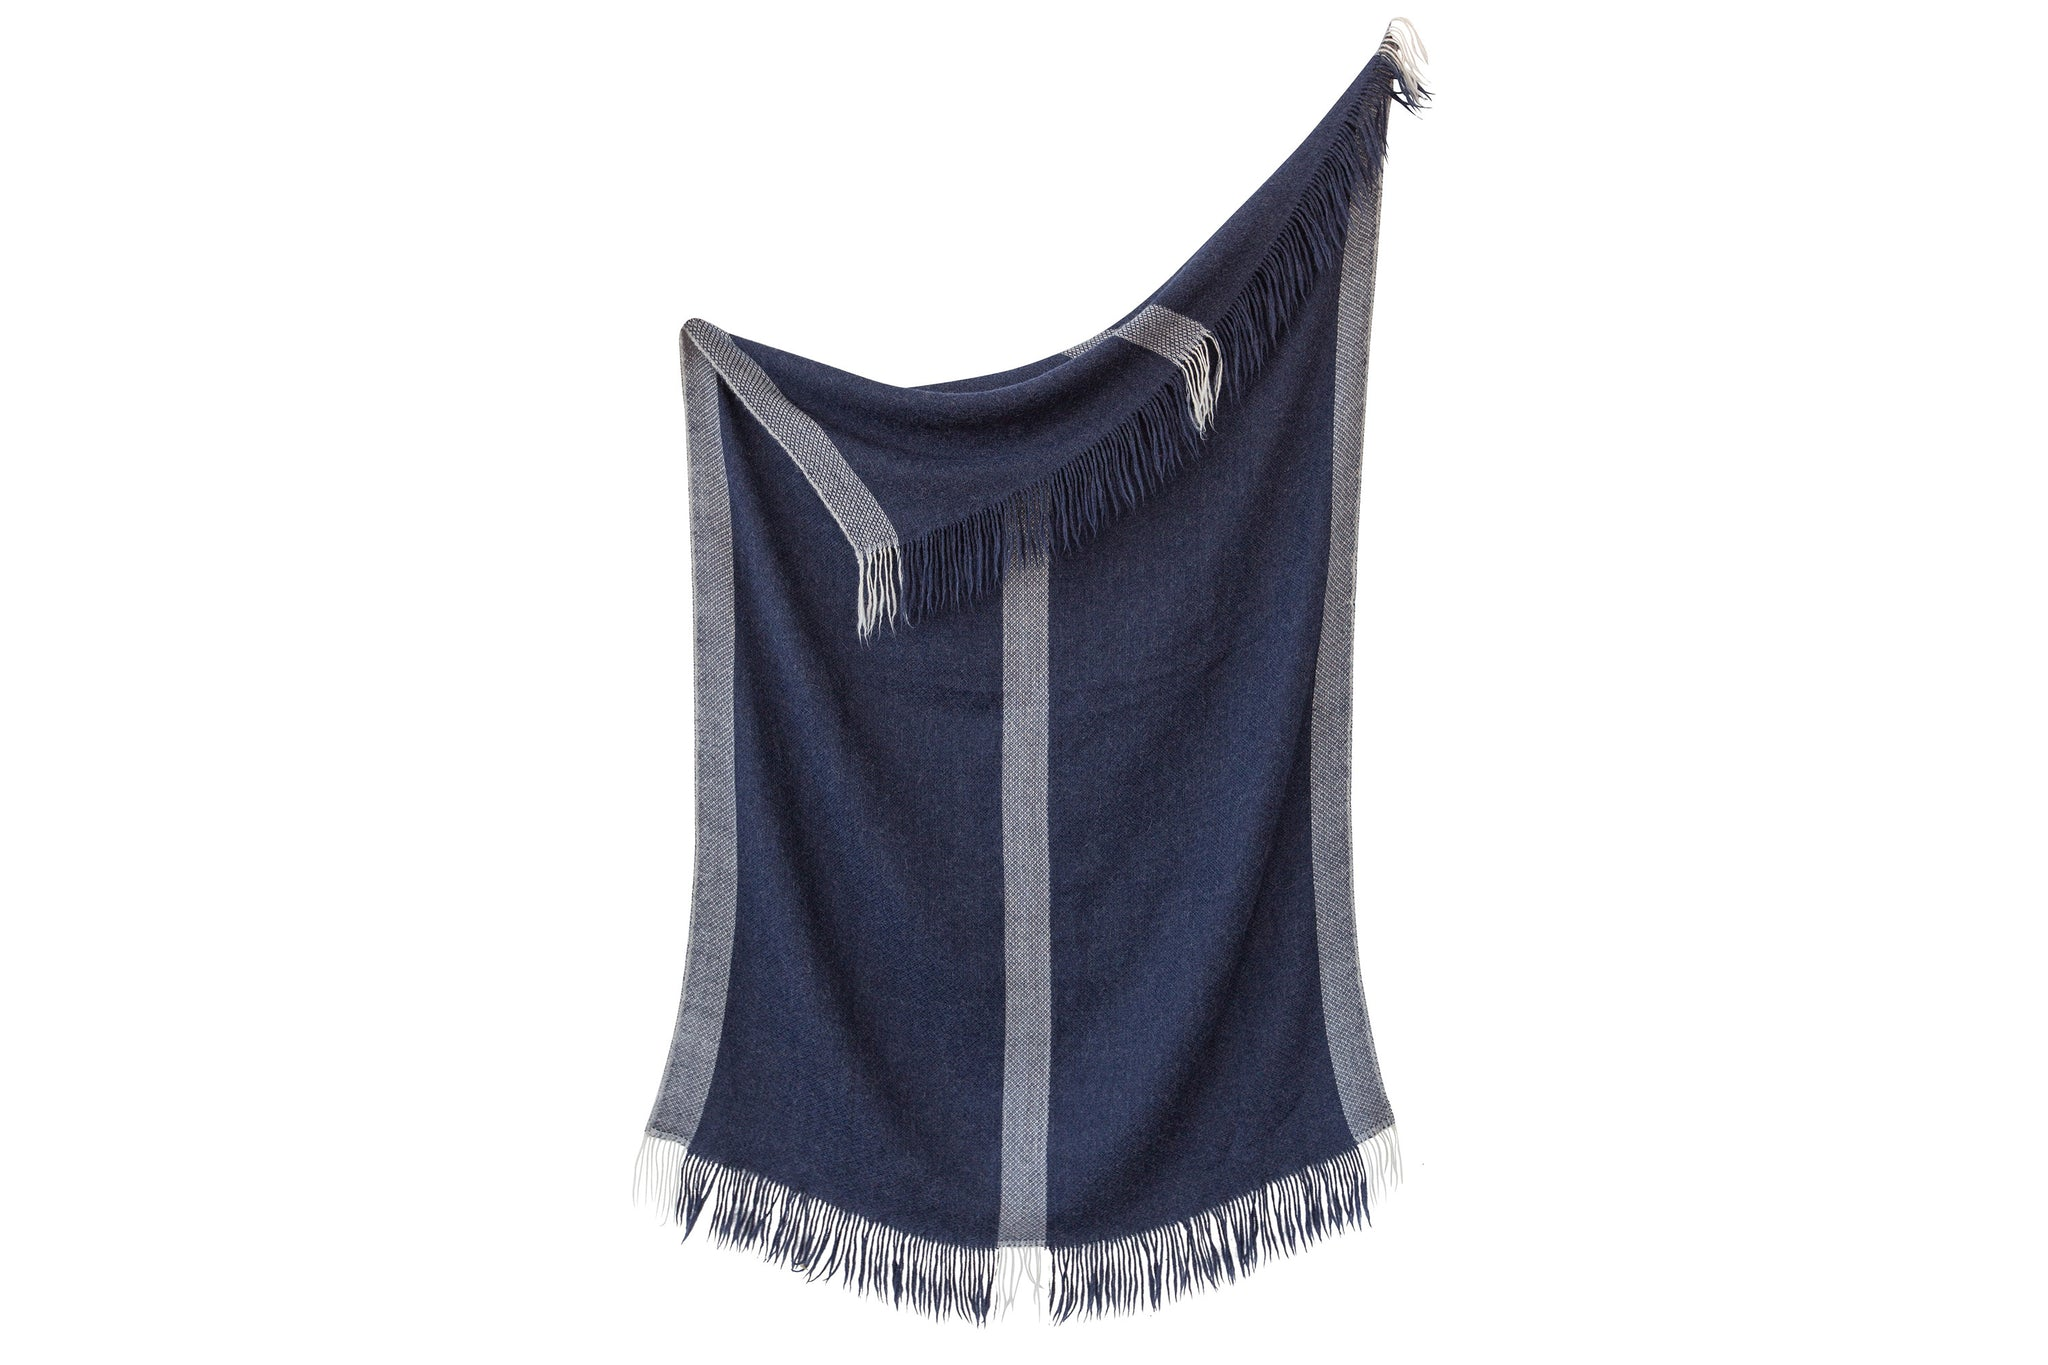 2111NVY,Honeycomb Throw Blanket In Navy